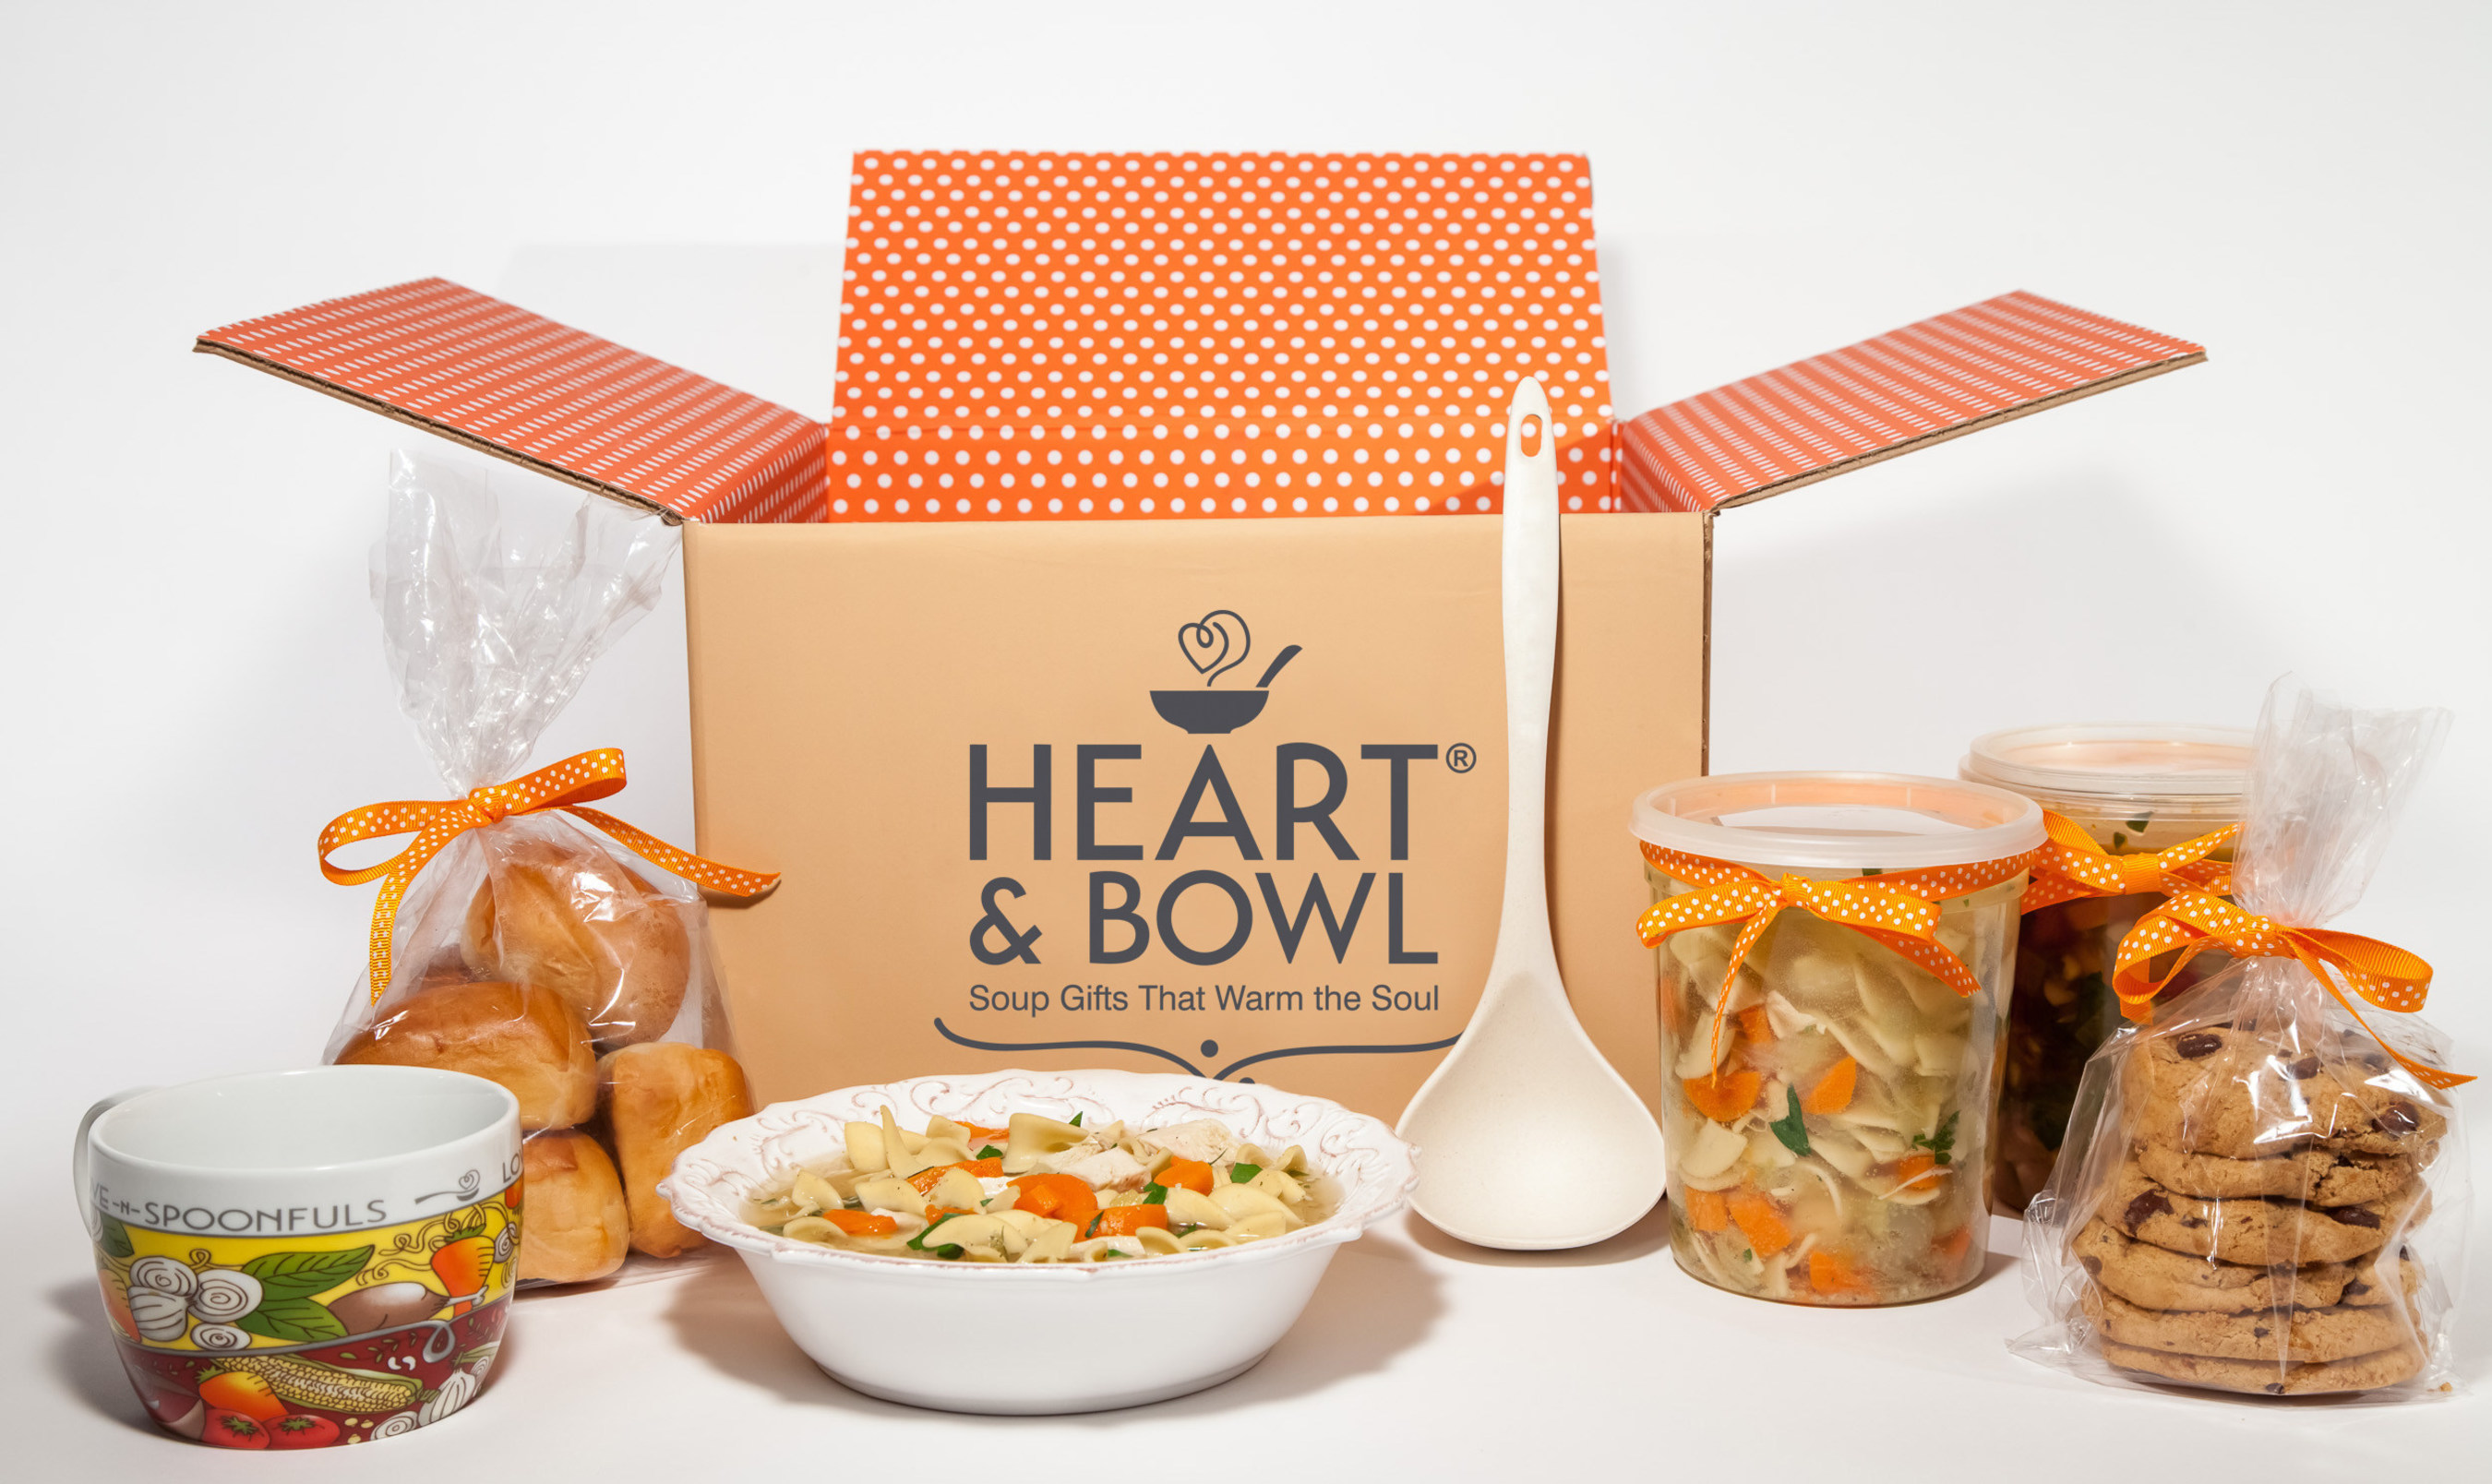 Introducing a New Concept in Gift Giving - Heart & Bowl, Soup Gifts that Warm the Soul